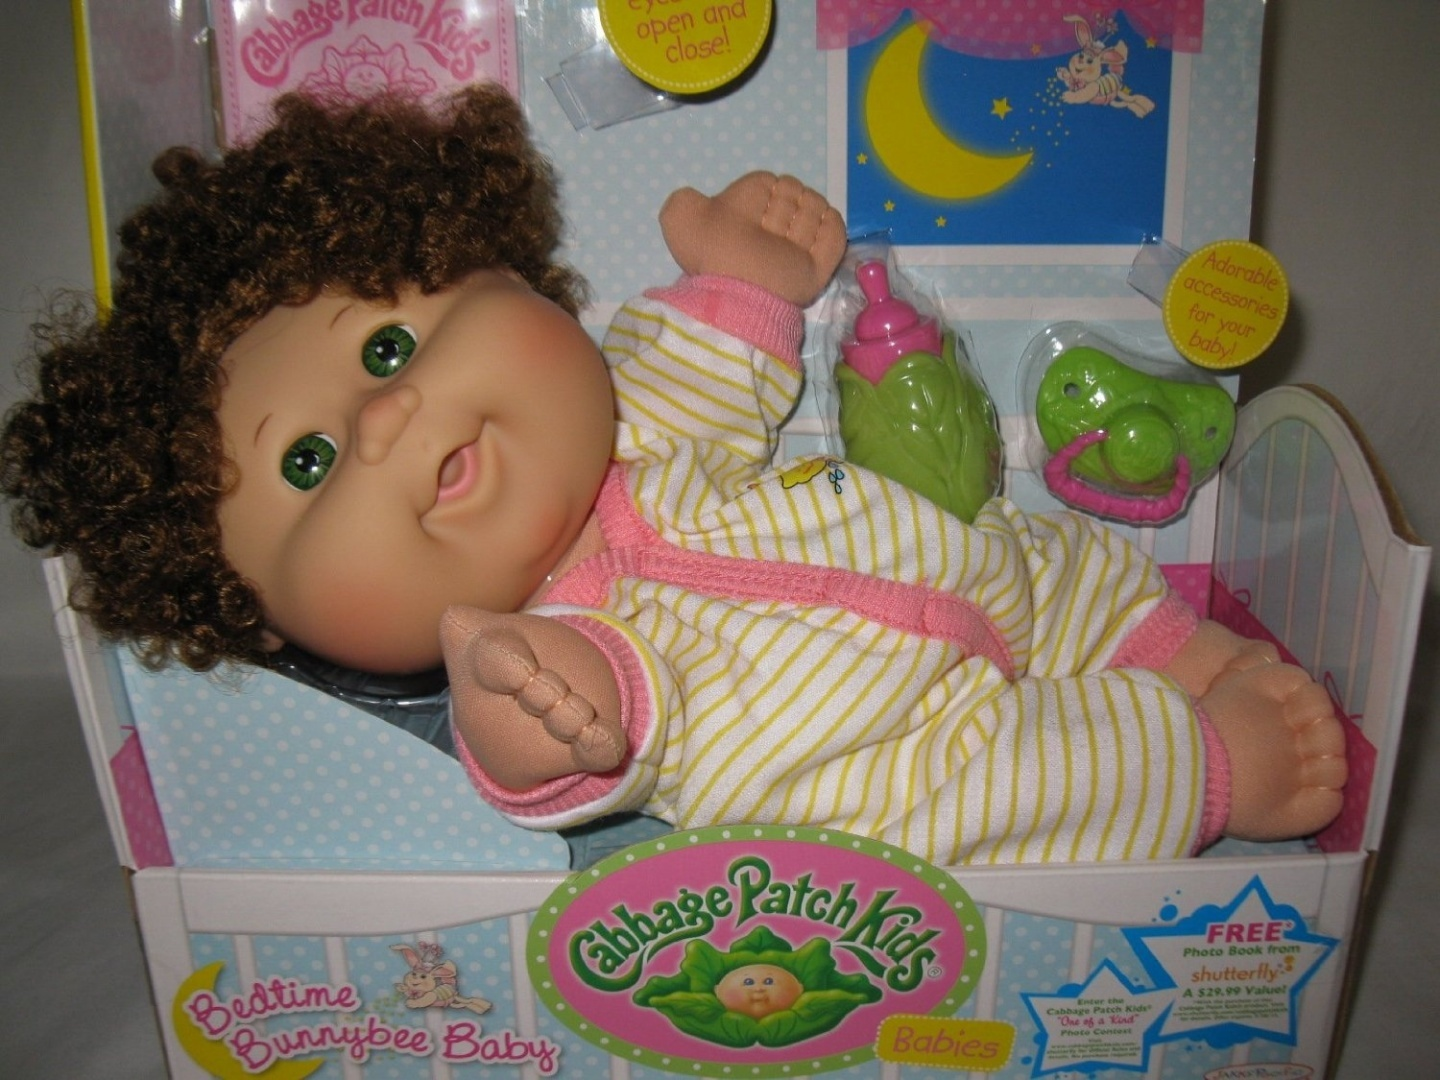 Cabbage Patch Kids Bedtime Bunnybee Baby Brown Curly Hair Green Eyes by  Jakks - Shop Online for Toys in the United States